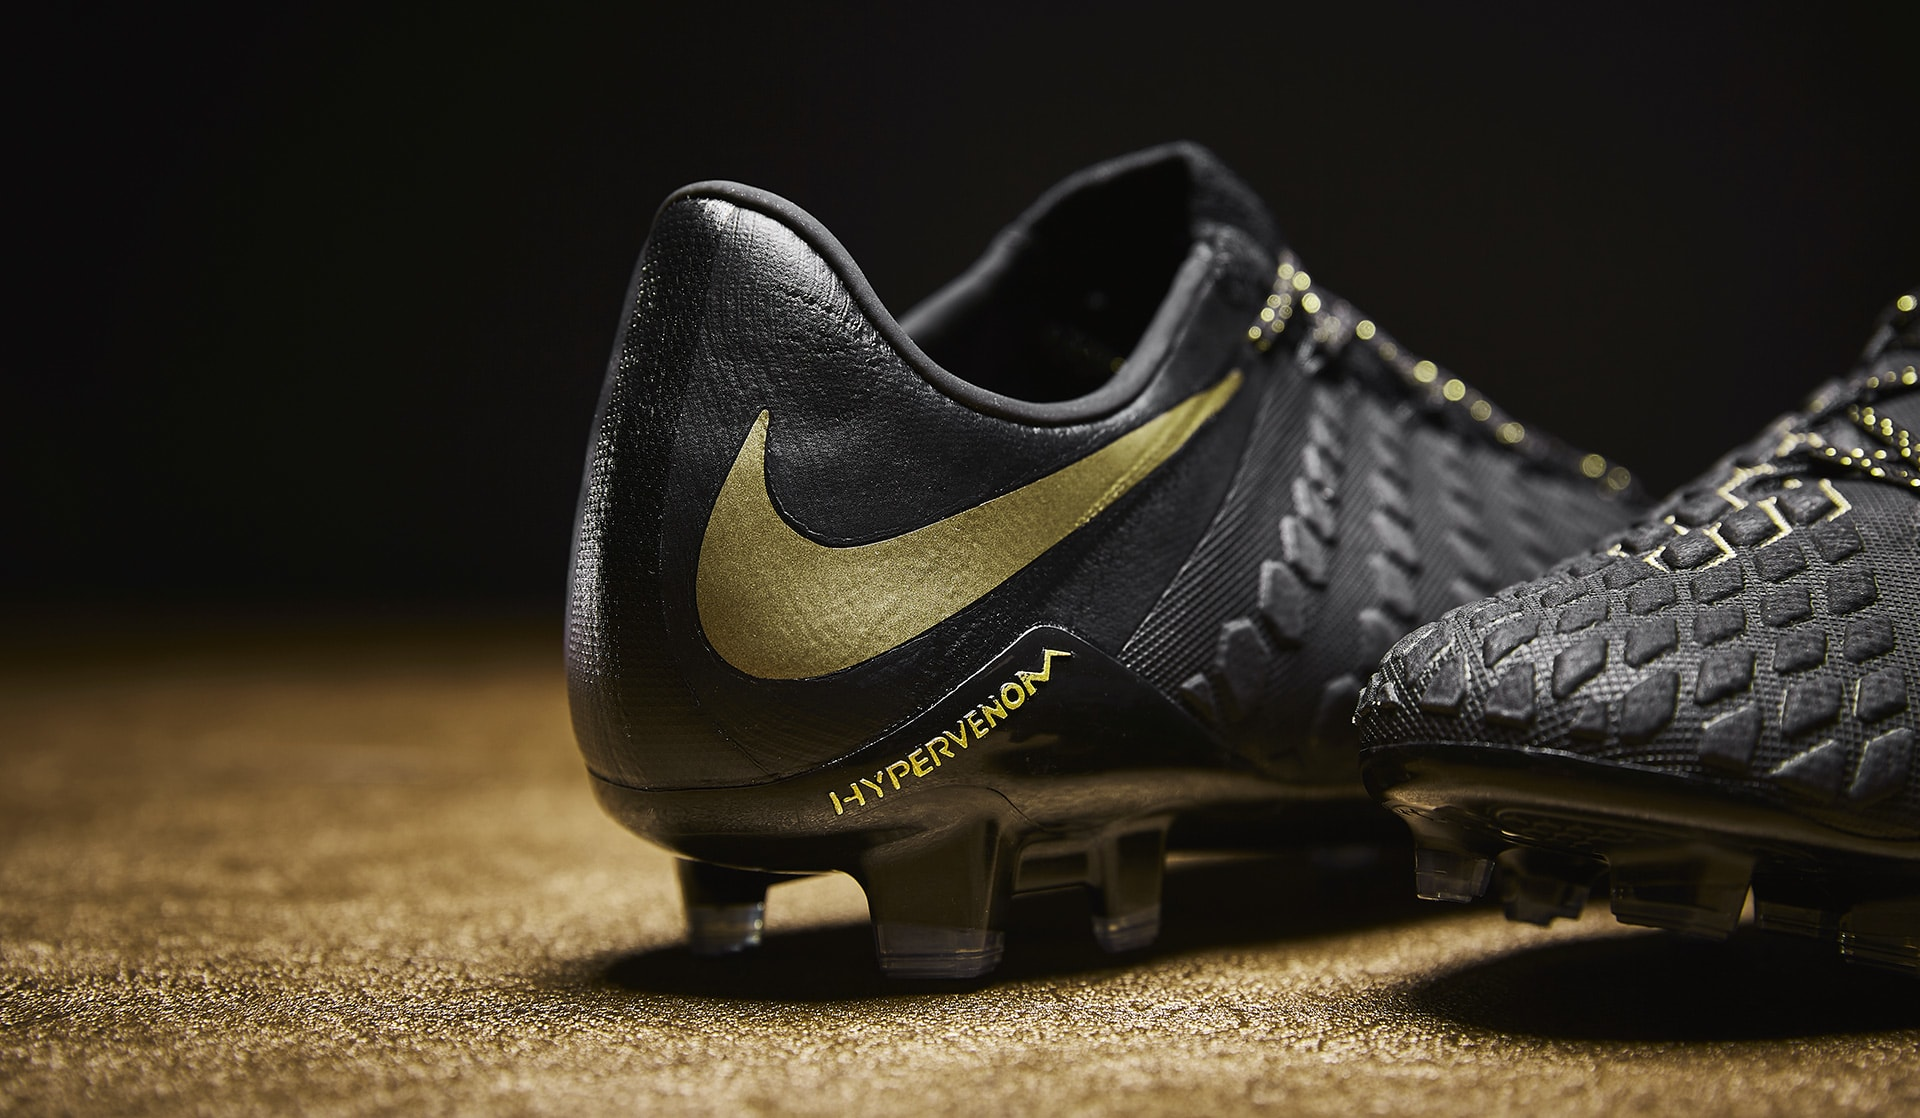 Nike Hypervenom Game of Gold